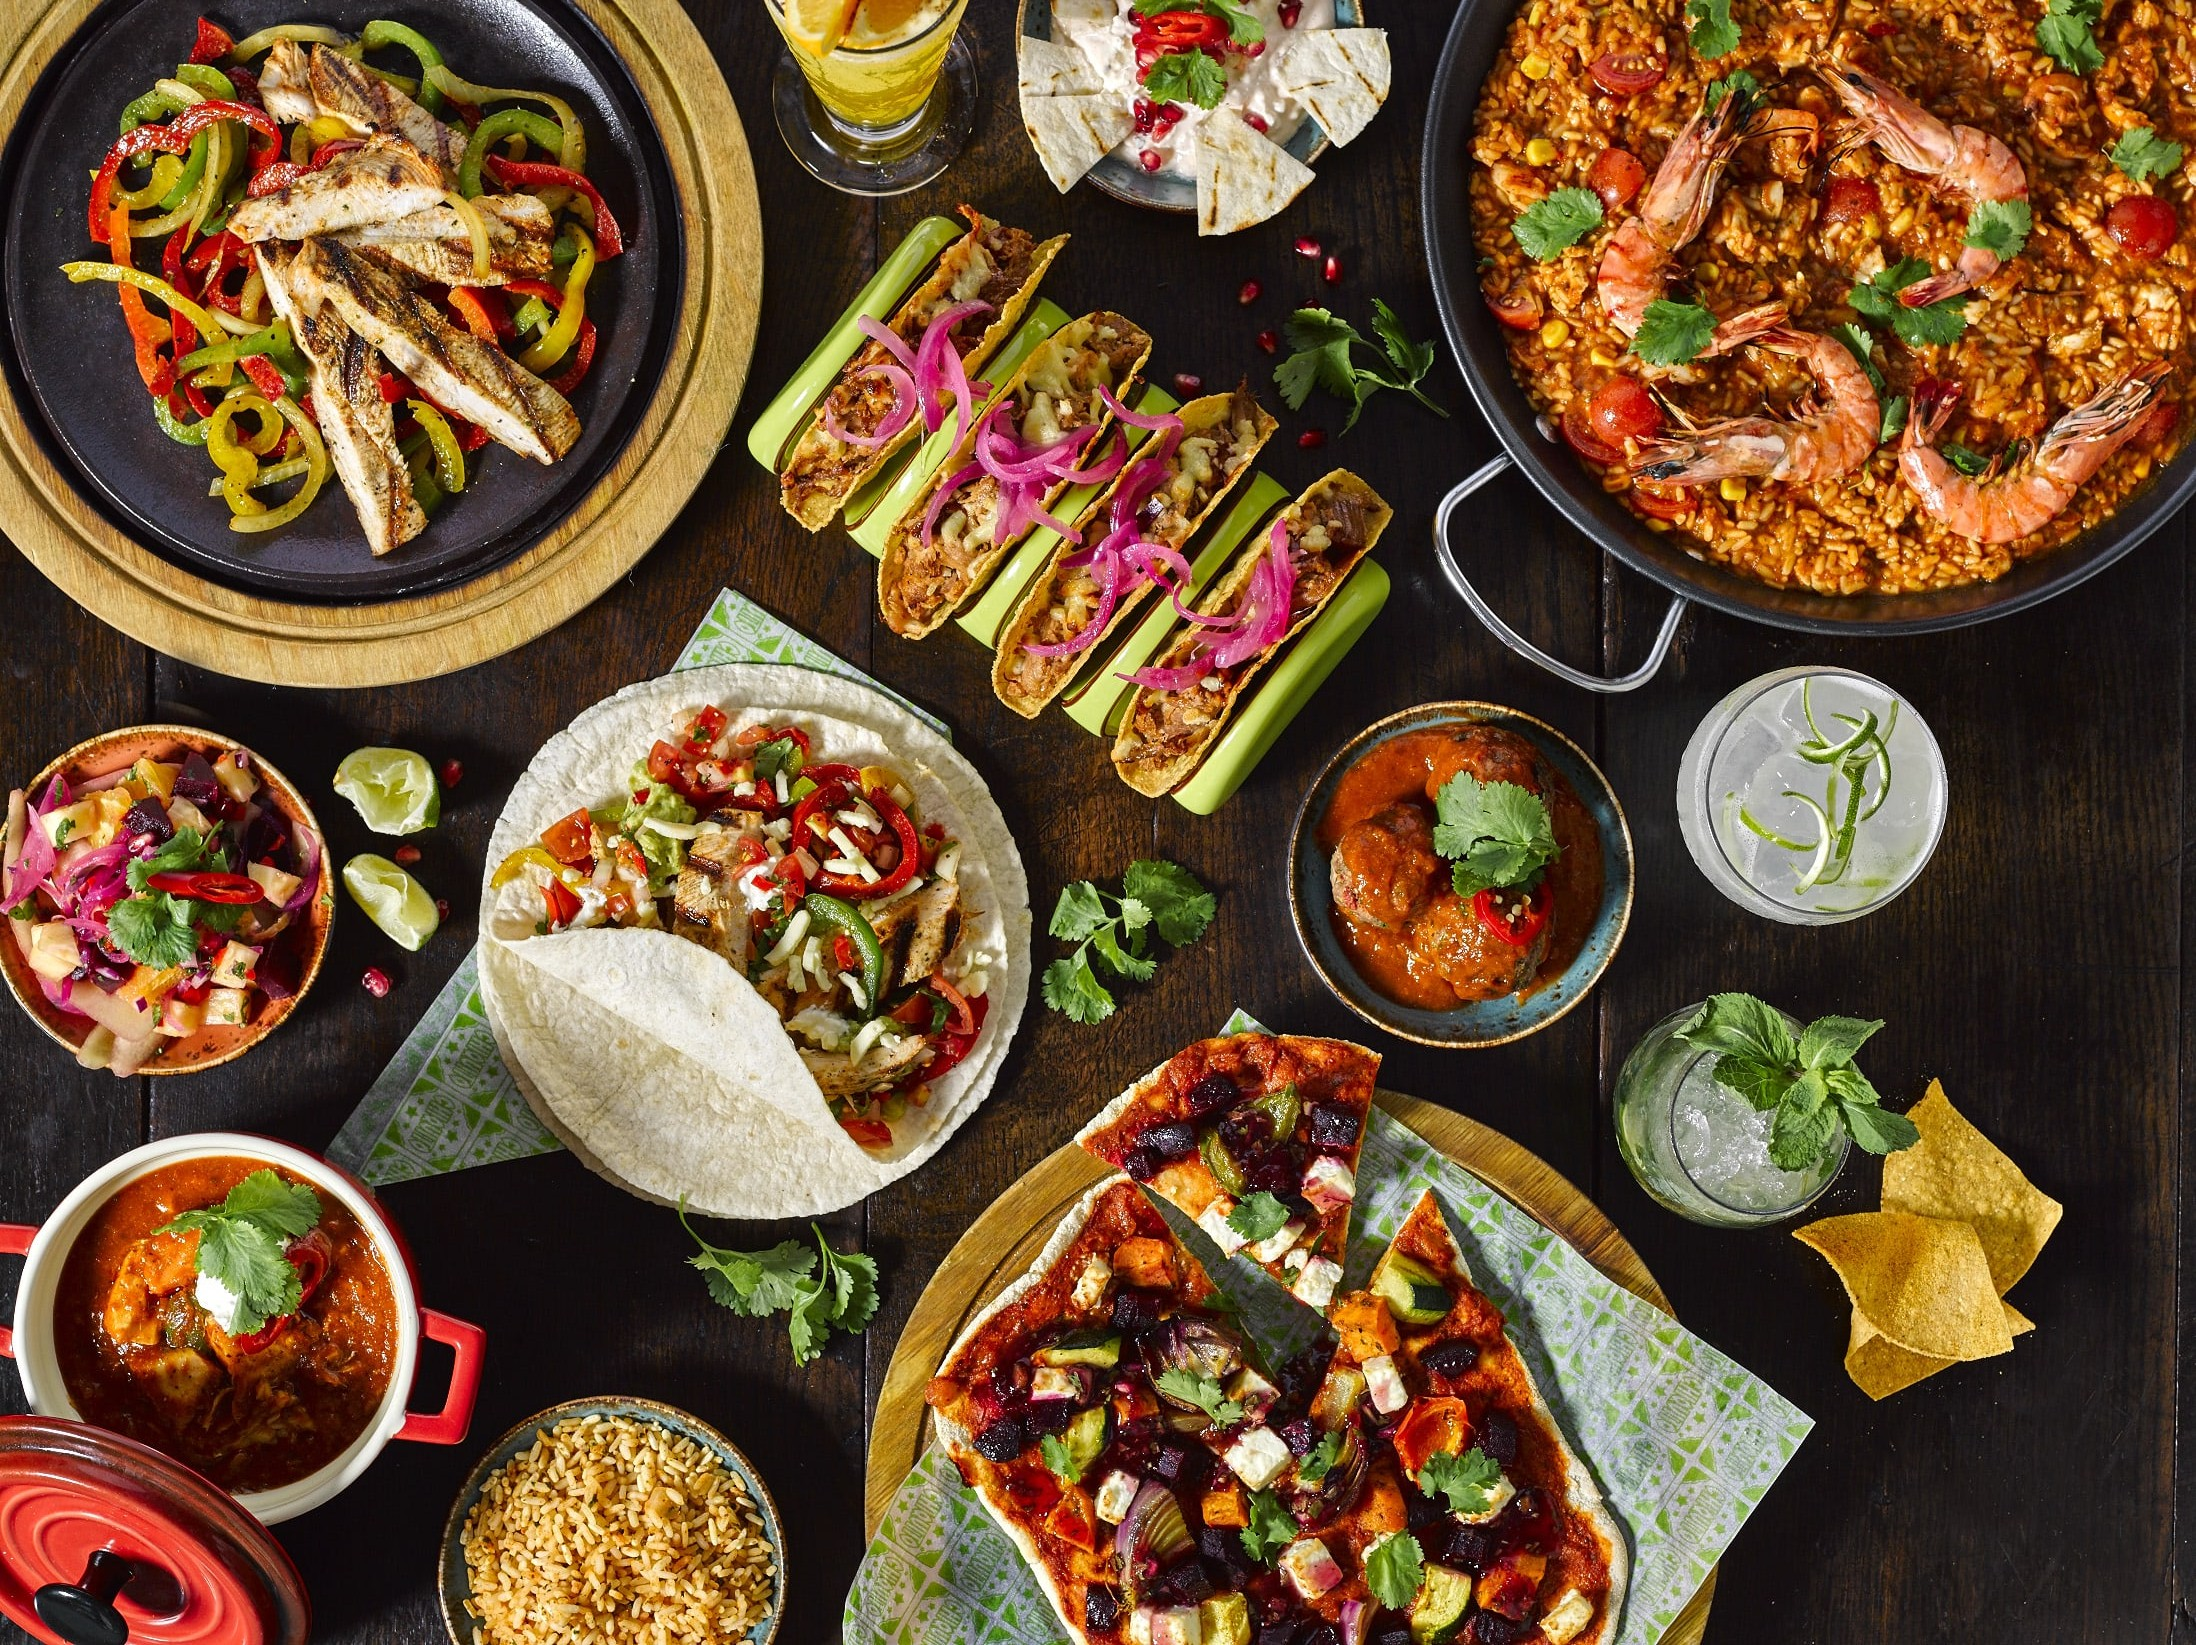 Chiquito - Feltham - Greater London